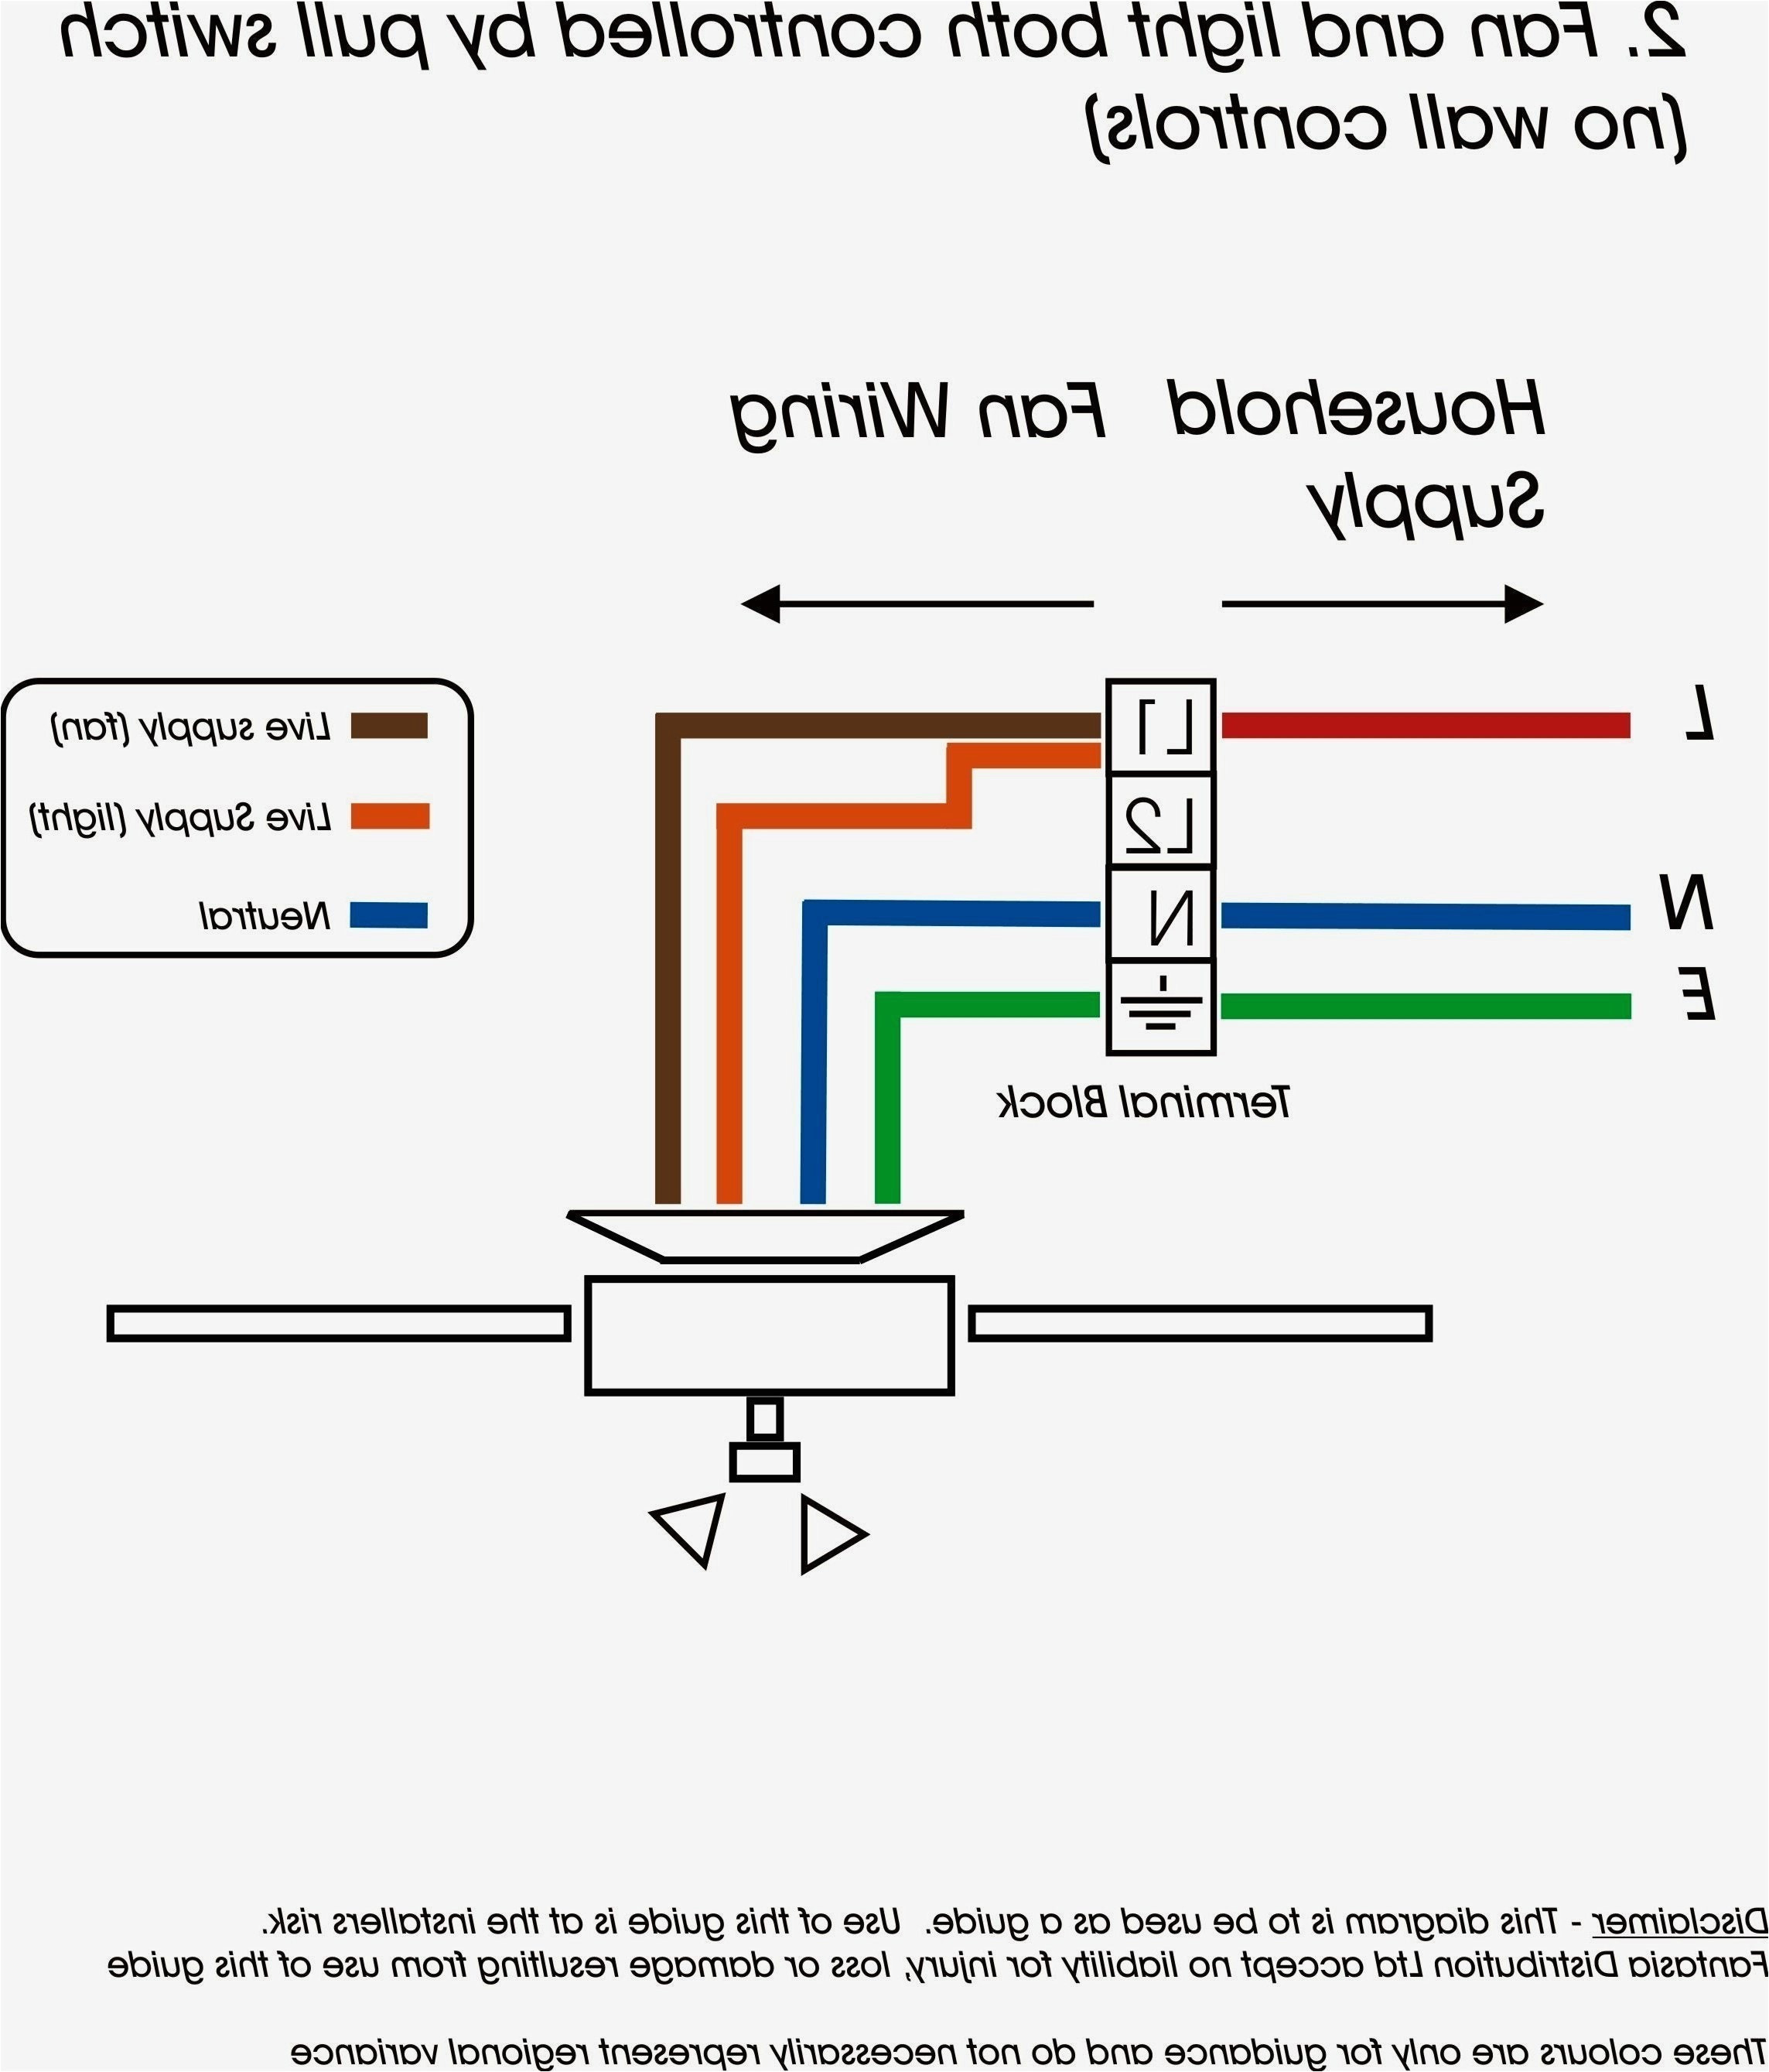 icf 2s26 h1 ld wiring diagram lovely philips electronic ballast wiring diagram simplified shapes t8